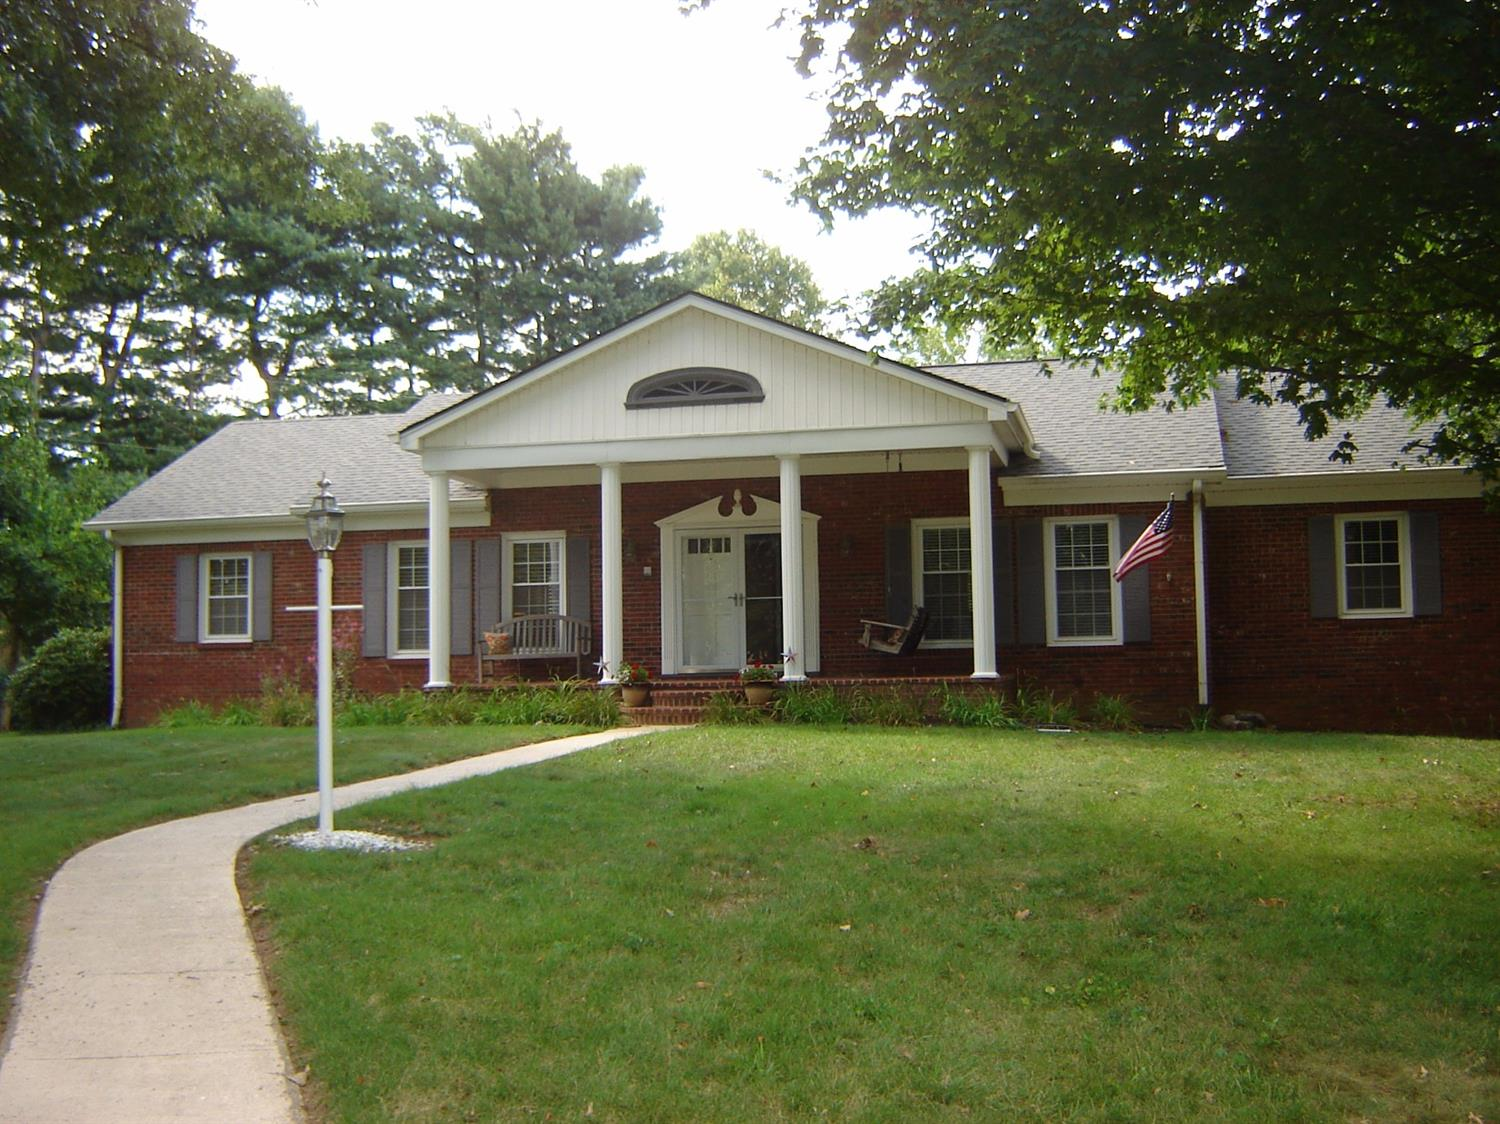 New%20Price%20!%20This%20beautiful%20inlaid%20brick%204BR,2BA,2%20half%20bath%20home%20has%20been%20very%20well%20maintained.%20Many%20updates%20including:%20new%20shingles%202013,HVAC%20and%20hot%20water%20heater%202014-2016,Bamboo%20hardwood%20floors%20in%20the%20kitchen,family%20room,foyer,halls.New%20kitchen%20back-splash,tile%20counters,and%20brick%20trim%20added%20to%20the%20fireplace.%20The%20spacious%202%201/2%20car%20garage%20also%20boasts%20a%20workbench%20and%20the%20convenience%20of%20heat%20for%20the%20winter.%20Enjoy%20an%20evening%20overlooking%20your%20spacious%20backyard%20form%20the%20multi-tier%20deck.%20Columbia%20gas%20is%20also%20available.%20Small%20quiet%20neighborhood,%20unique%20wooded%20lots%20with%20one%20entrance%20and%20exit.%20Close%20to%20shopping,schools,airport,%20and%20Keeneland.